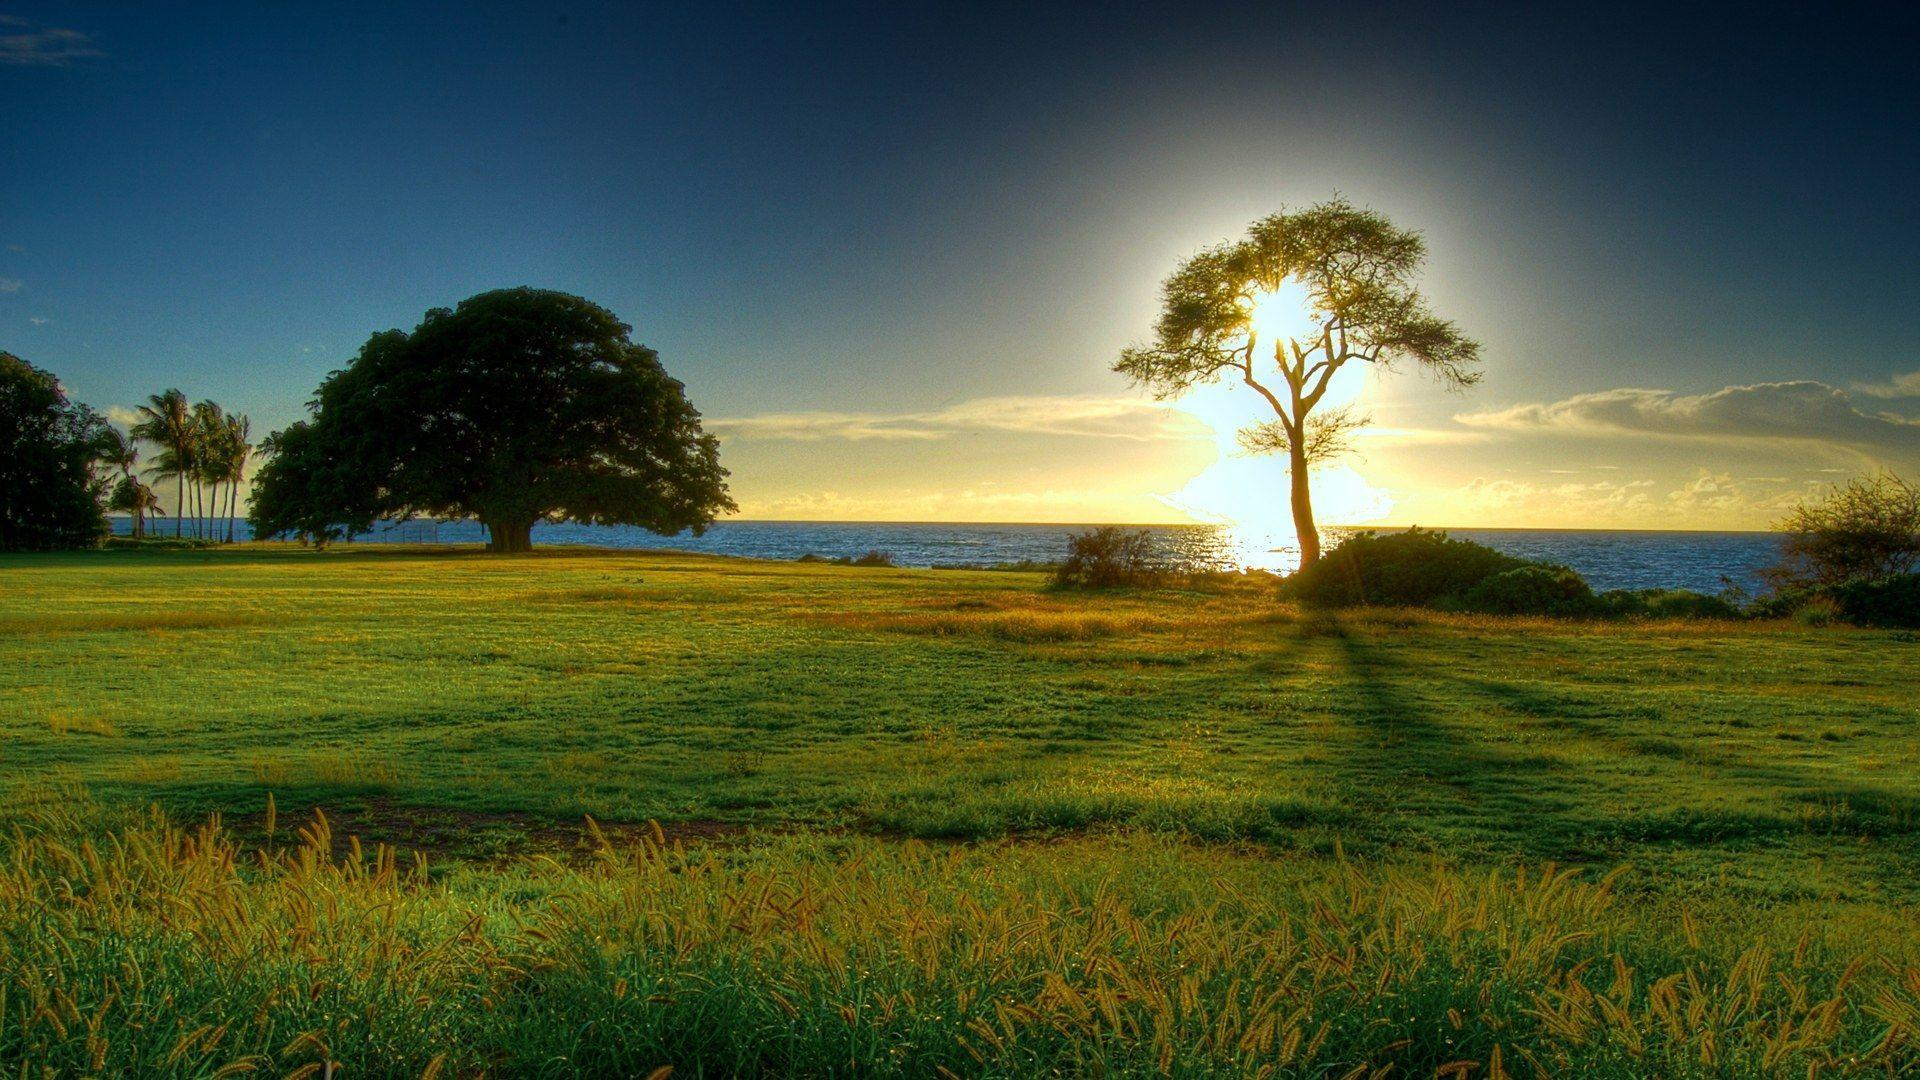 Nature Wallpapers High Definition - Wallpaper Cave